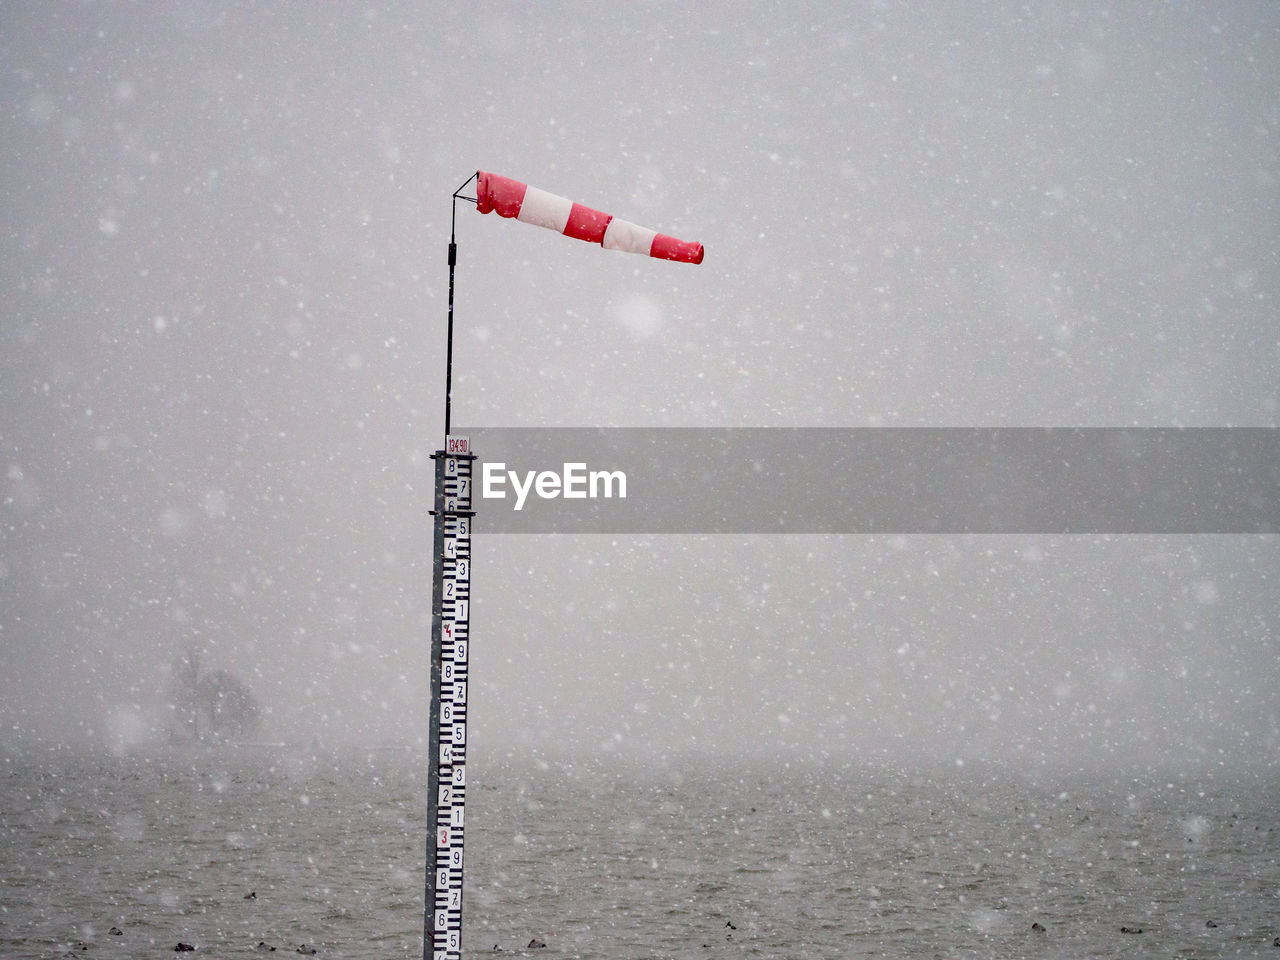 water, day, nature, fog, no people, cold temperature, winter, metal, sky, lighting equipment, red, beauty in nature, outdoors, sea, waterfront, beach, pole, snow